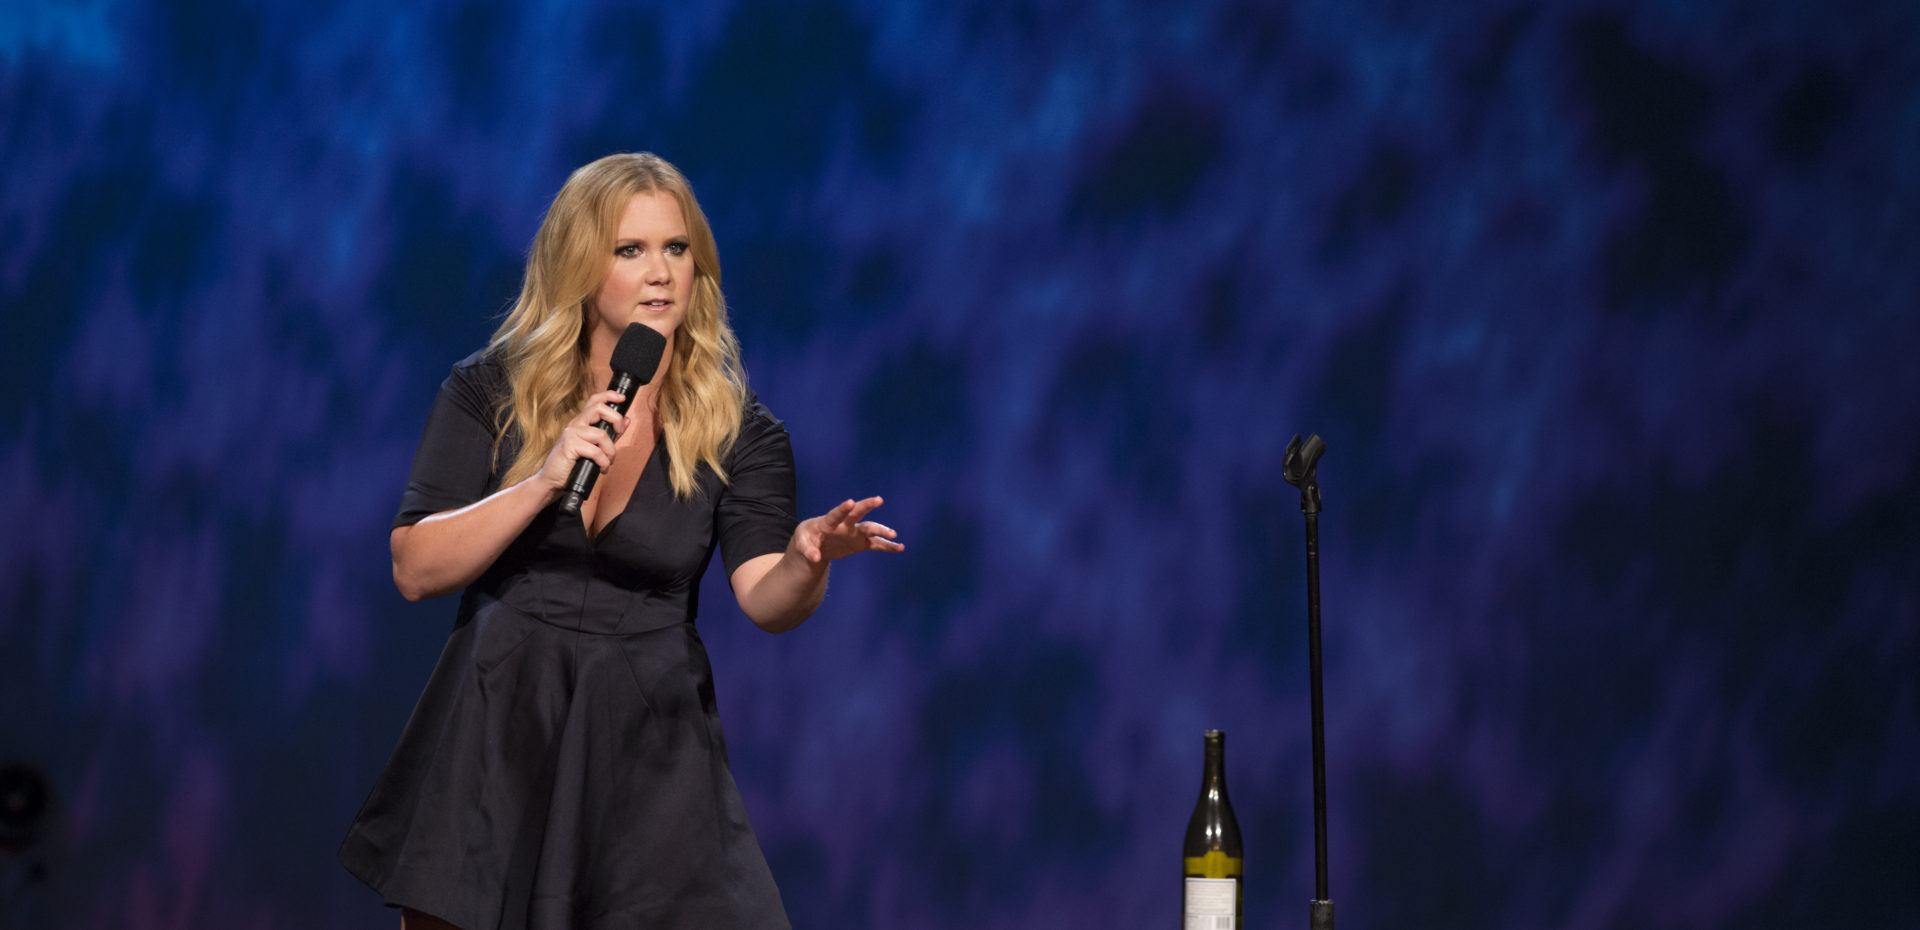 Wine Weed Ambien Utis And Sex Acts Amy Schumer Live At The